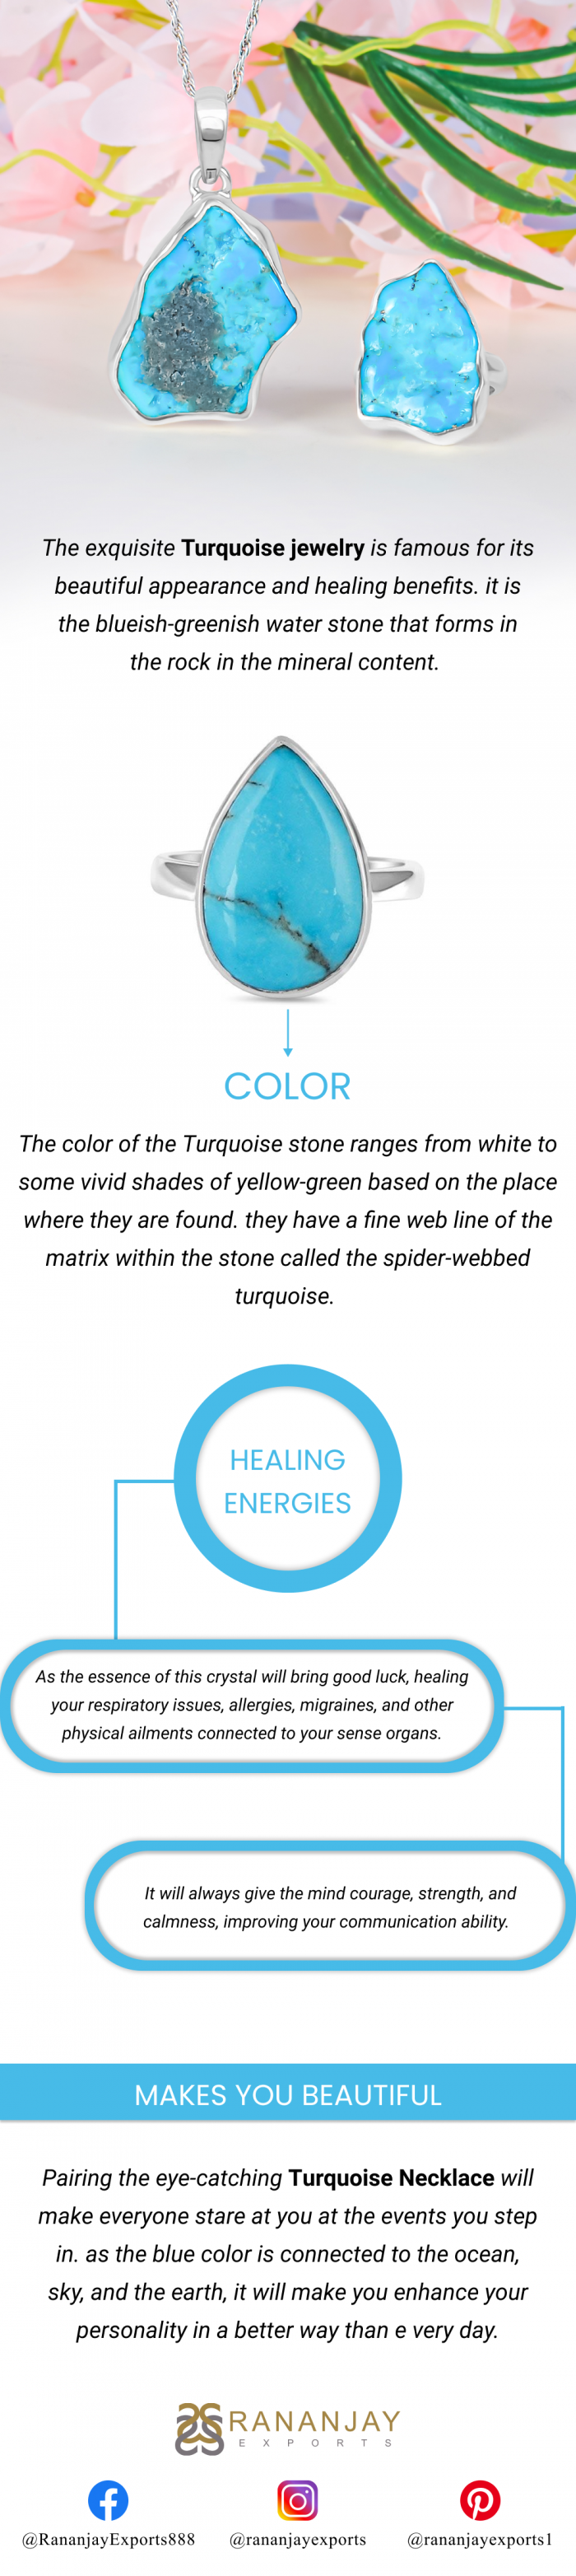 Turquoise Stone Color And Healing Energies